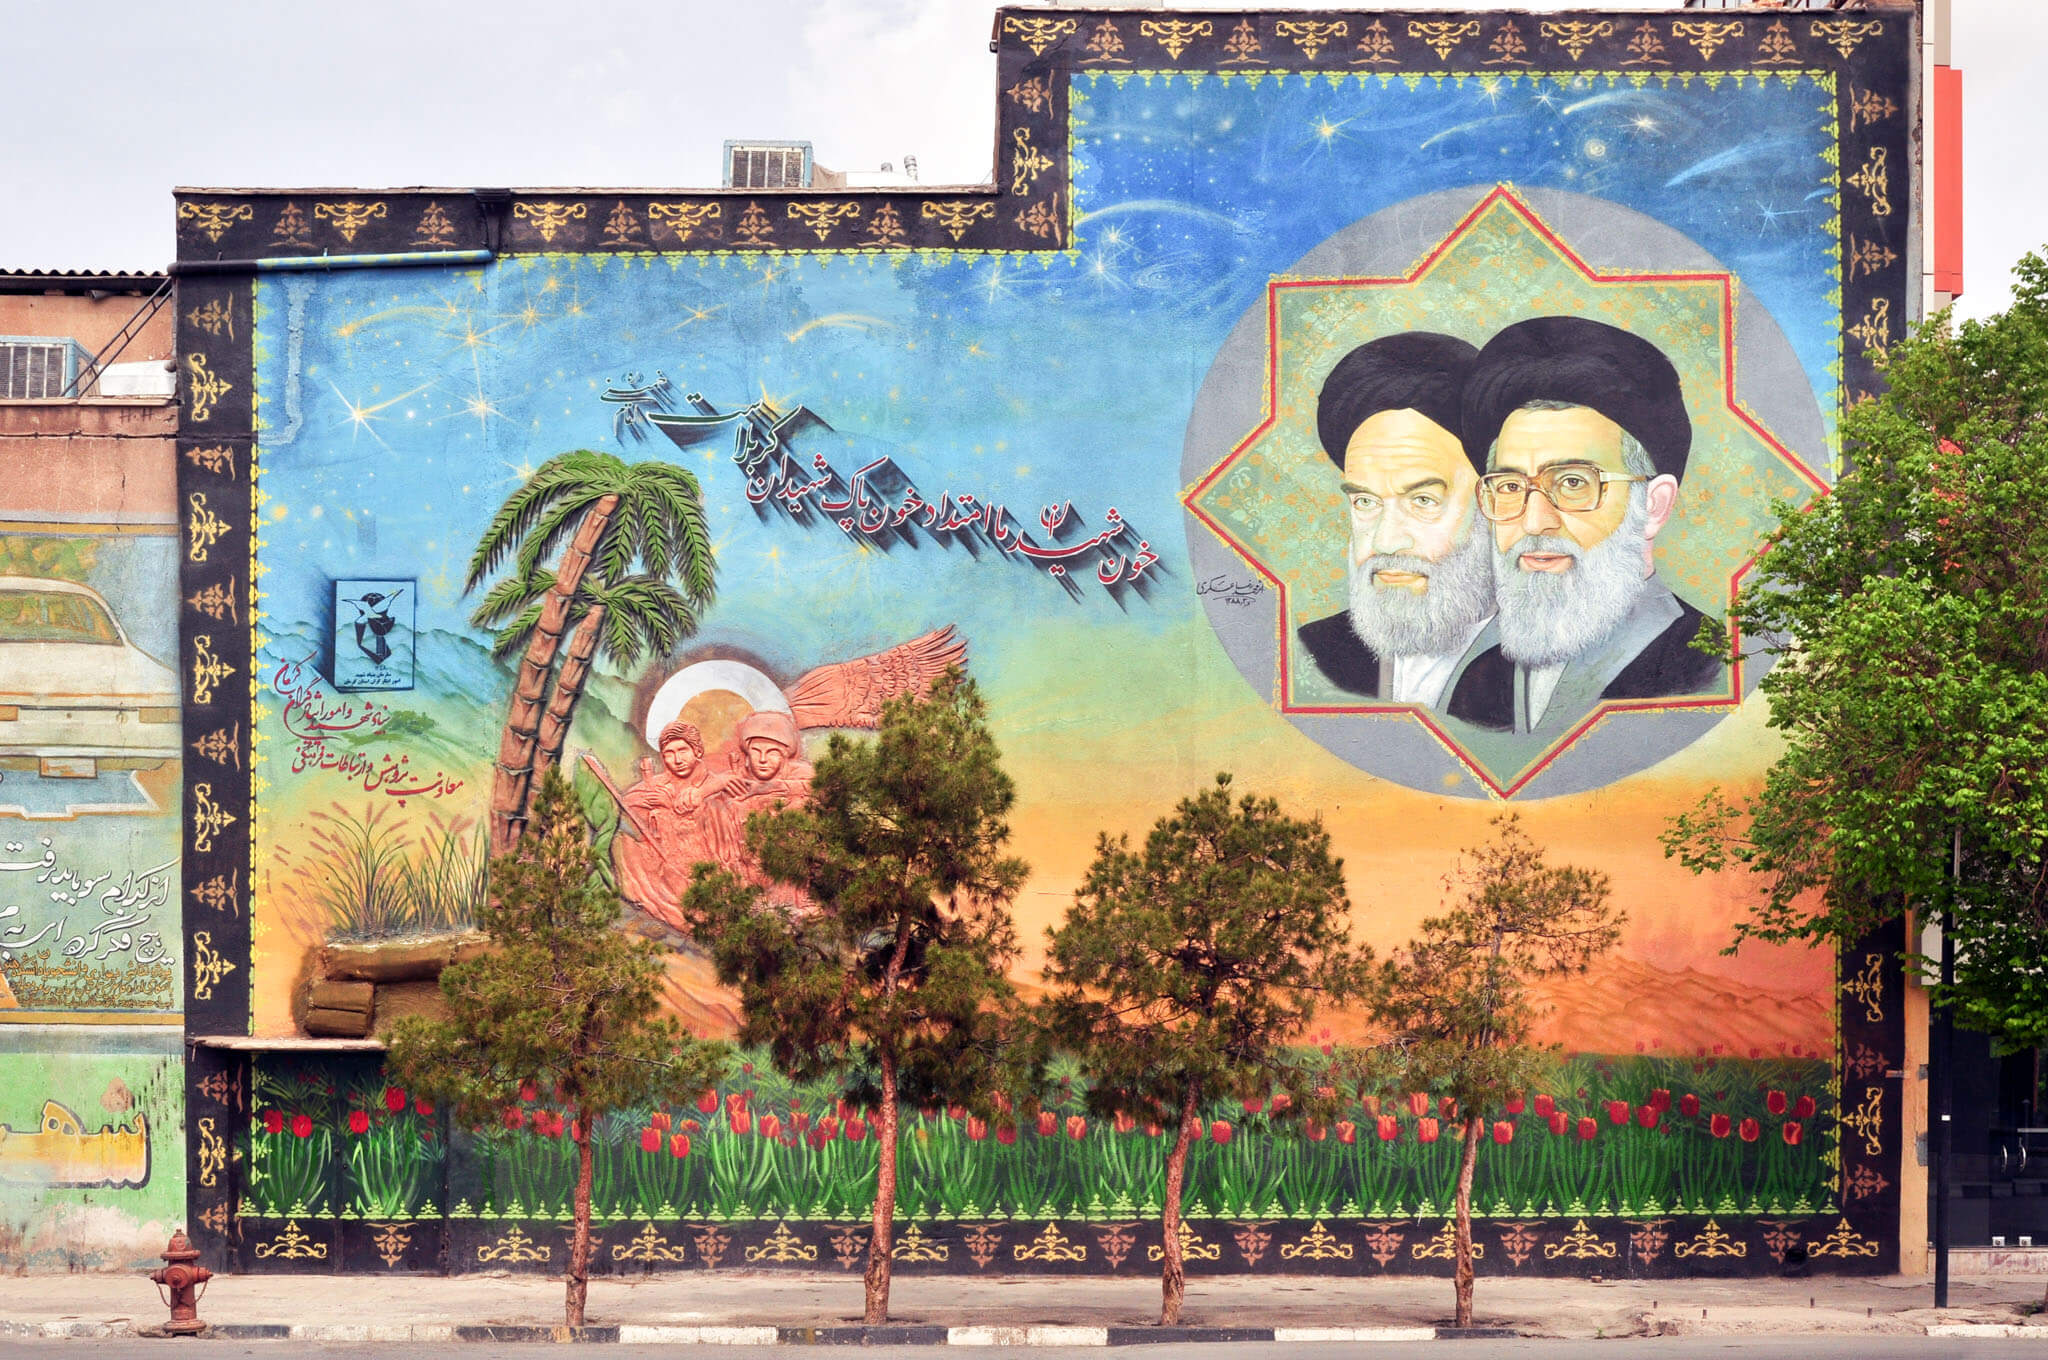 Mural in the Iranian city of Kerman. Source: Bruno Vanbesien / Flickr